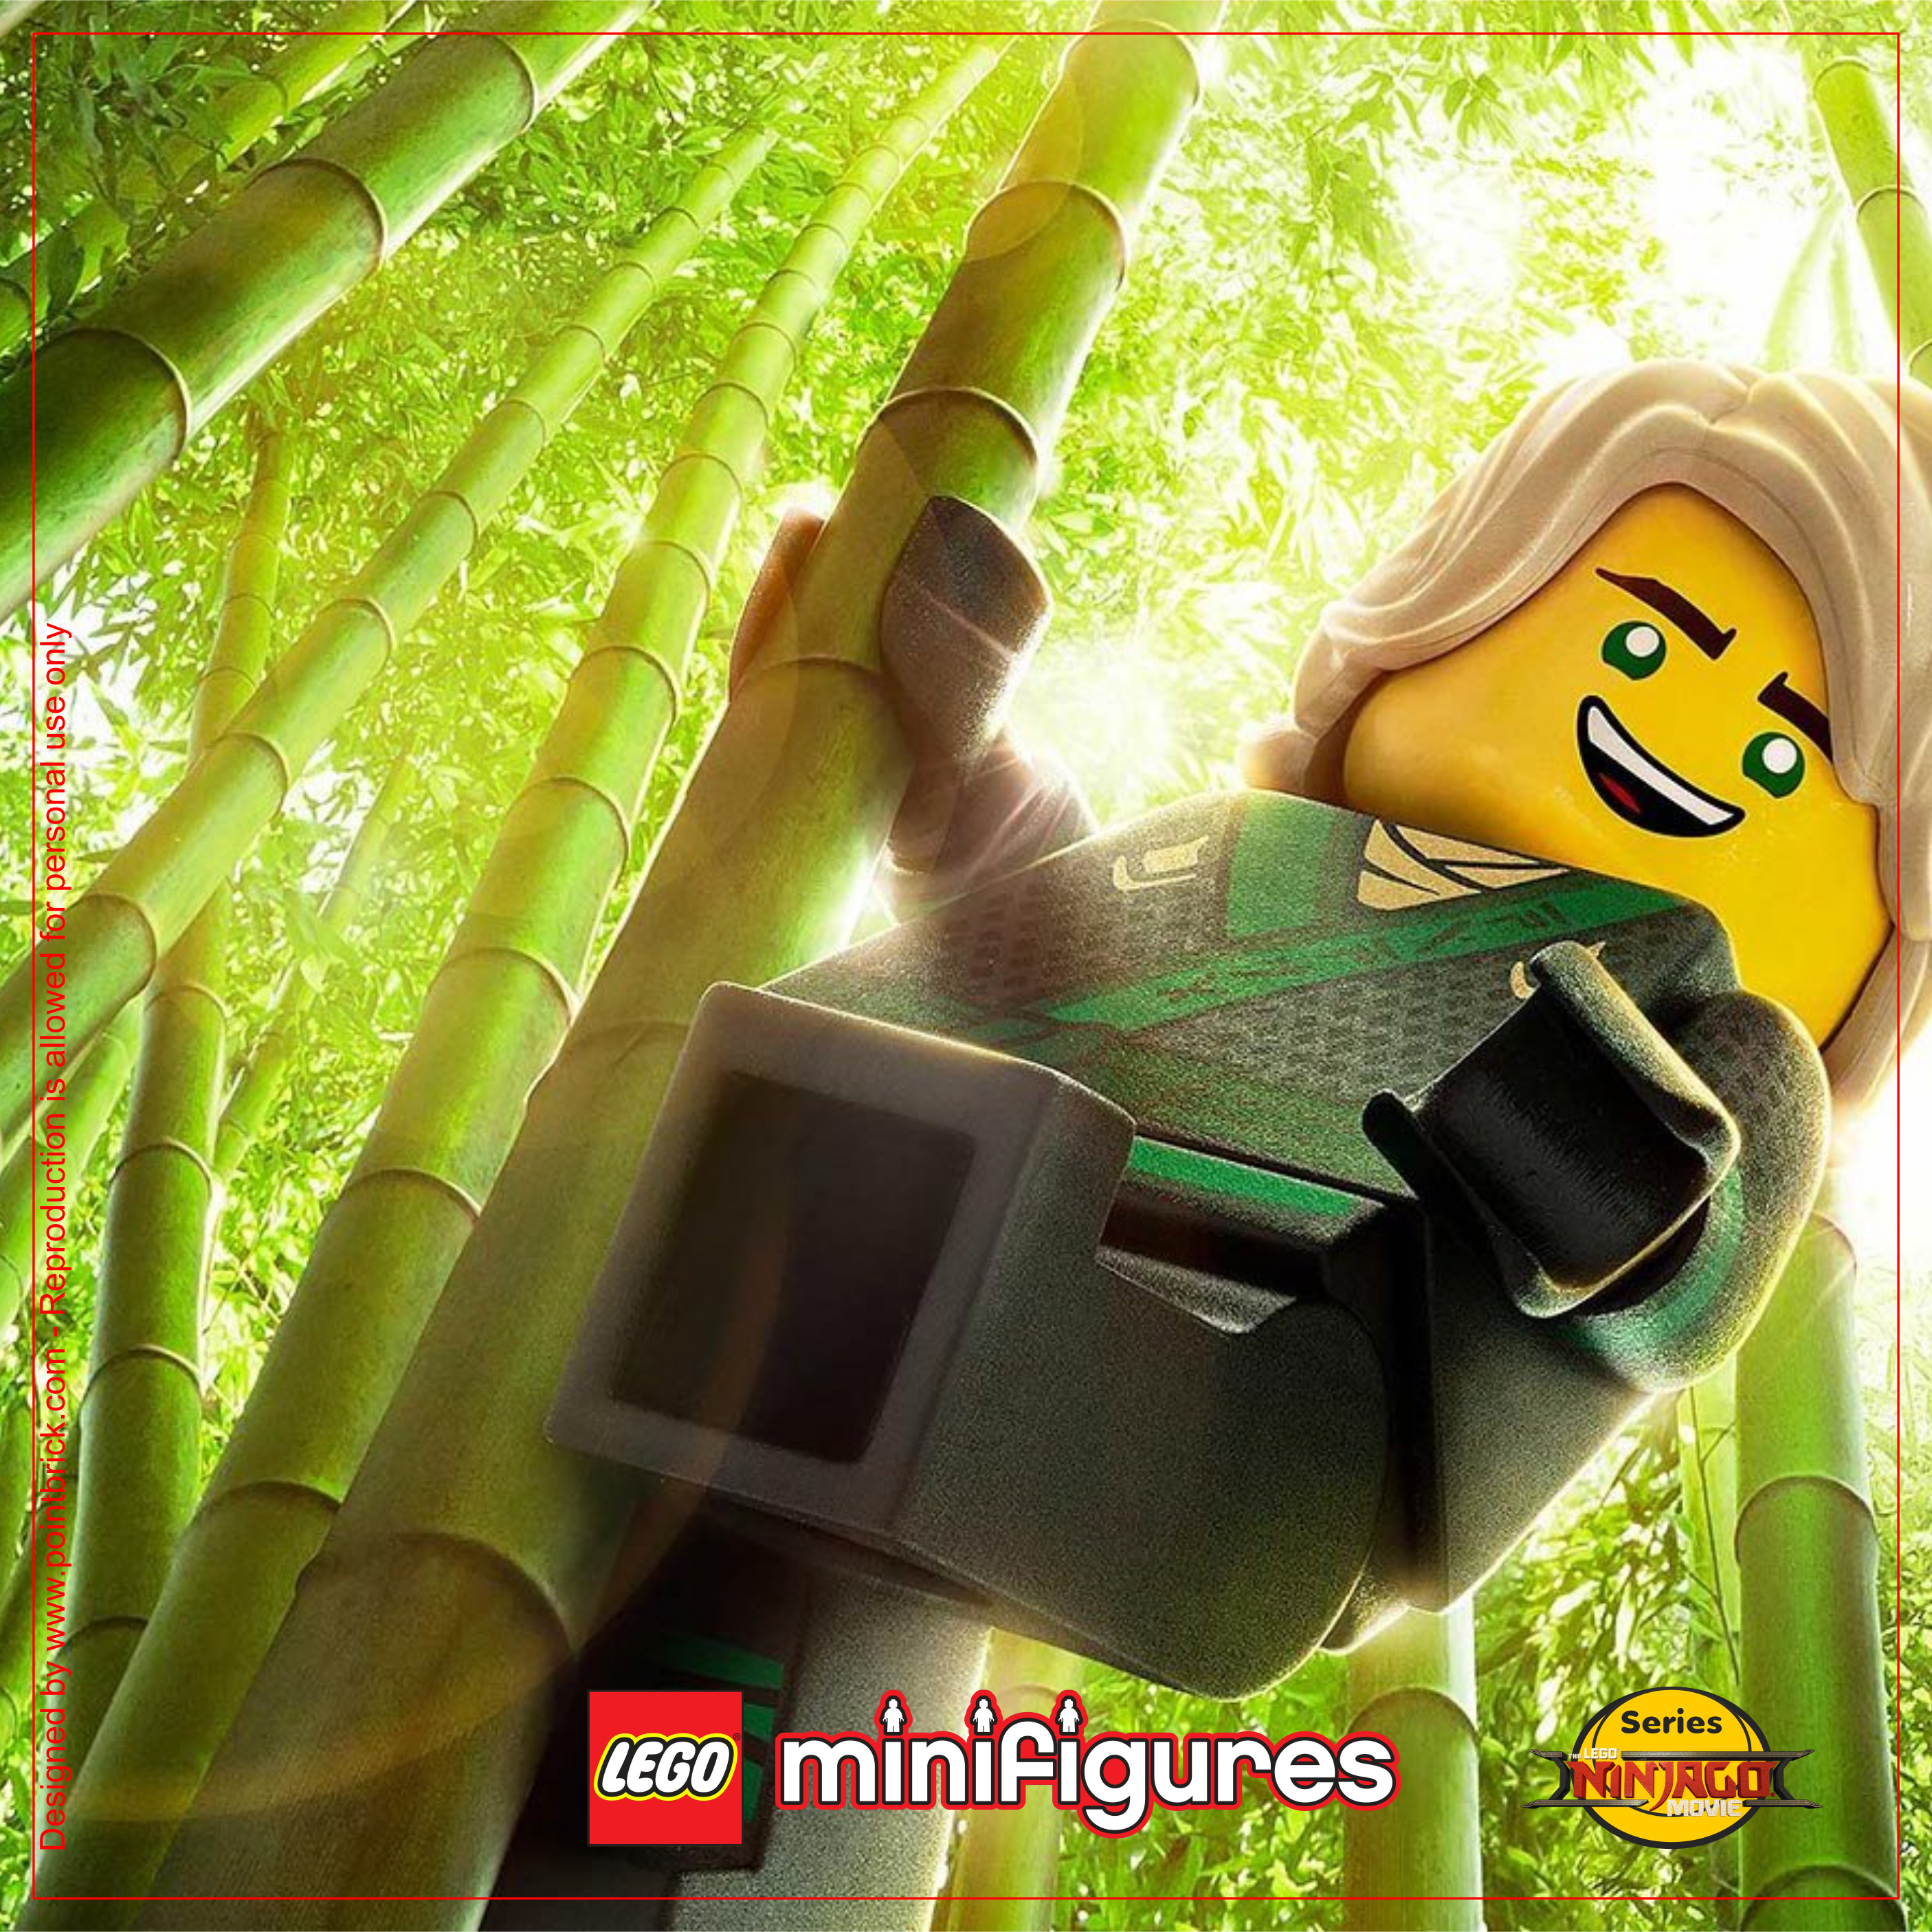 LEGO Minifigures 71019 The LEGO Ninjago Movie Lloyd - Display Frame Background 230mm plain - Clicca sull'immagine per scaricarla gratuitamente!